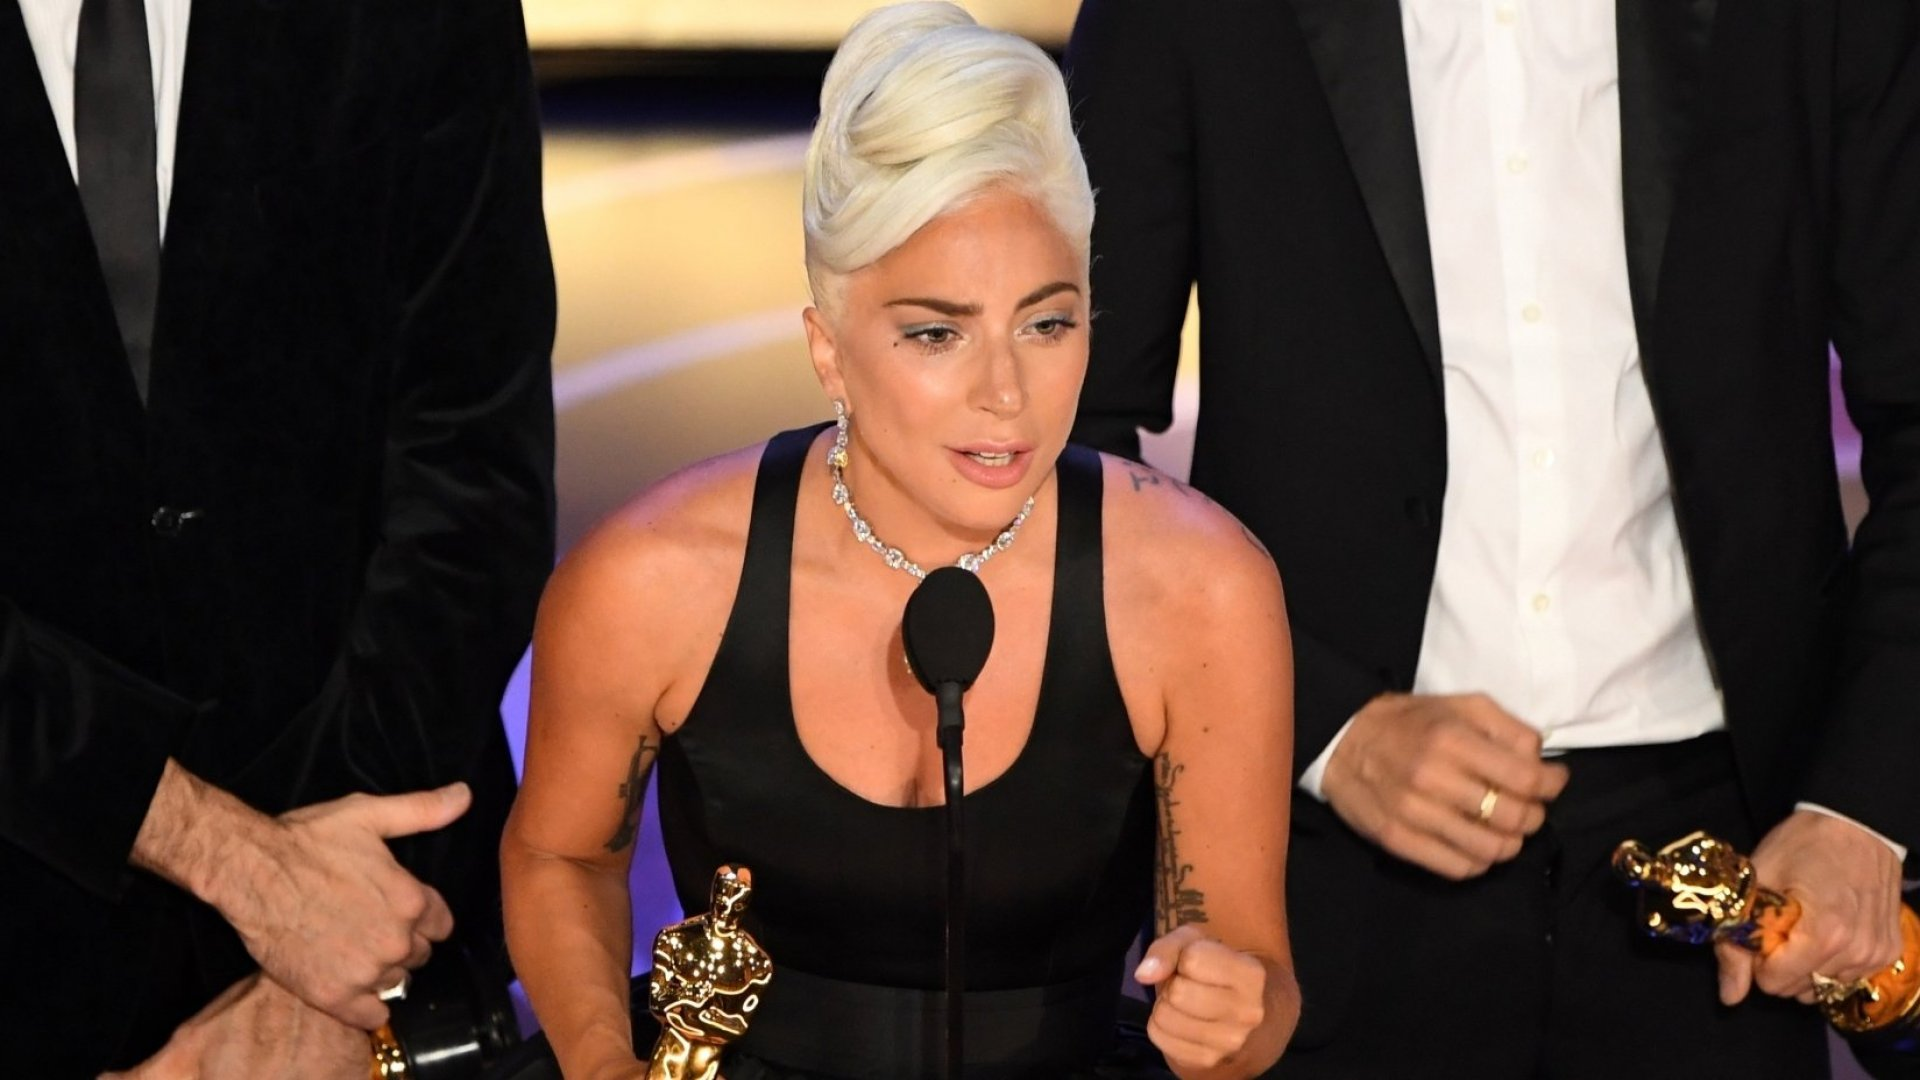 Lady Gaga Just Schooled Everyone on What it Means to Be An Entrepreneur